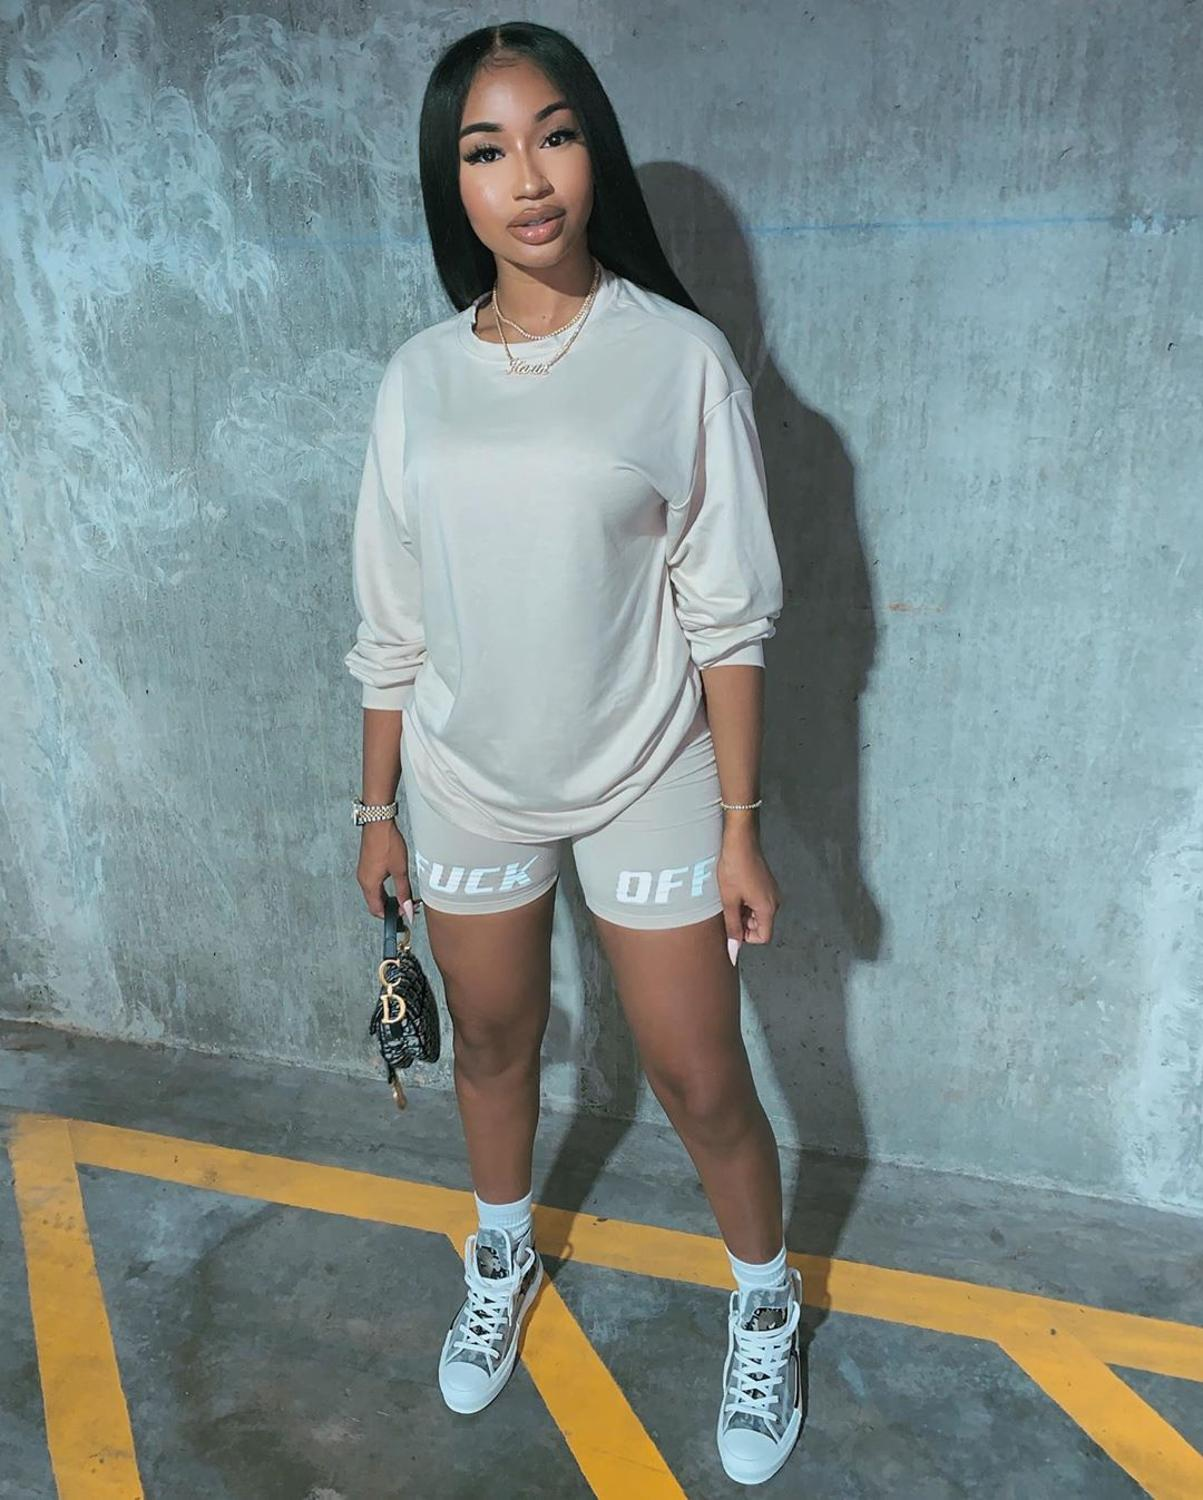 New Letter Print Two Piece Outfits Set Women Tracksuit 2020 Summer Long Sleeve T Shirt Sexy Tops +Biker Shorts Jogger Suits Sets